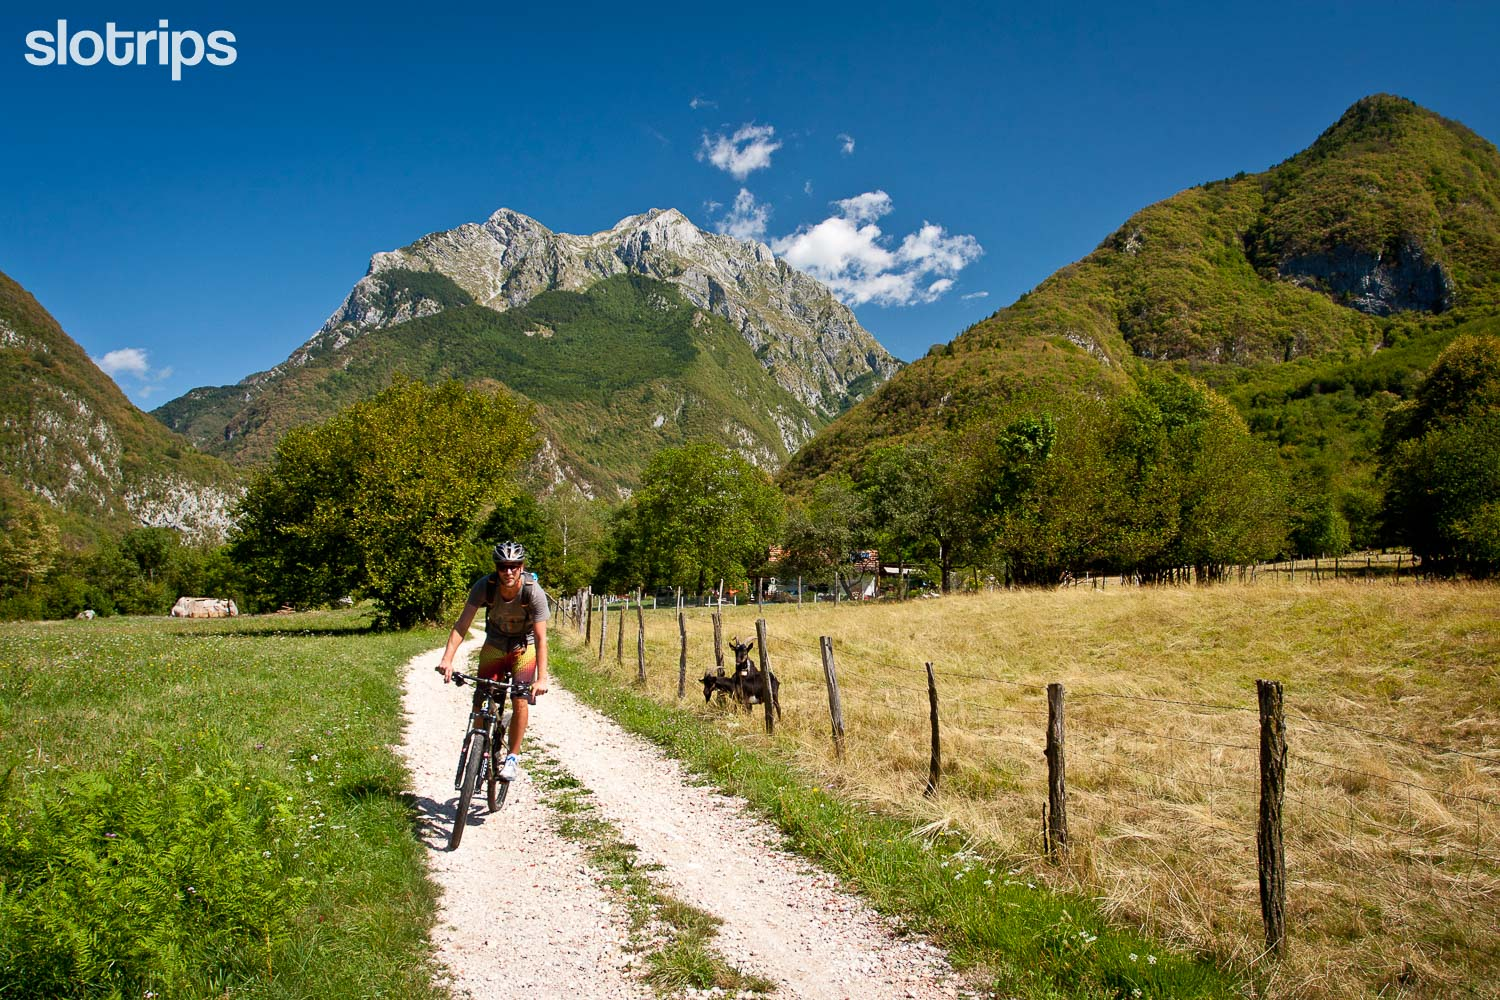 Biker in the Soca valley with rugged mountains in the background